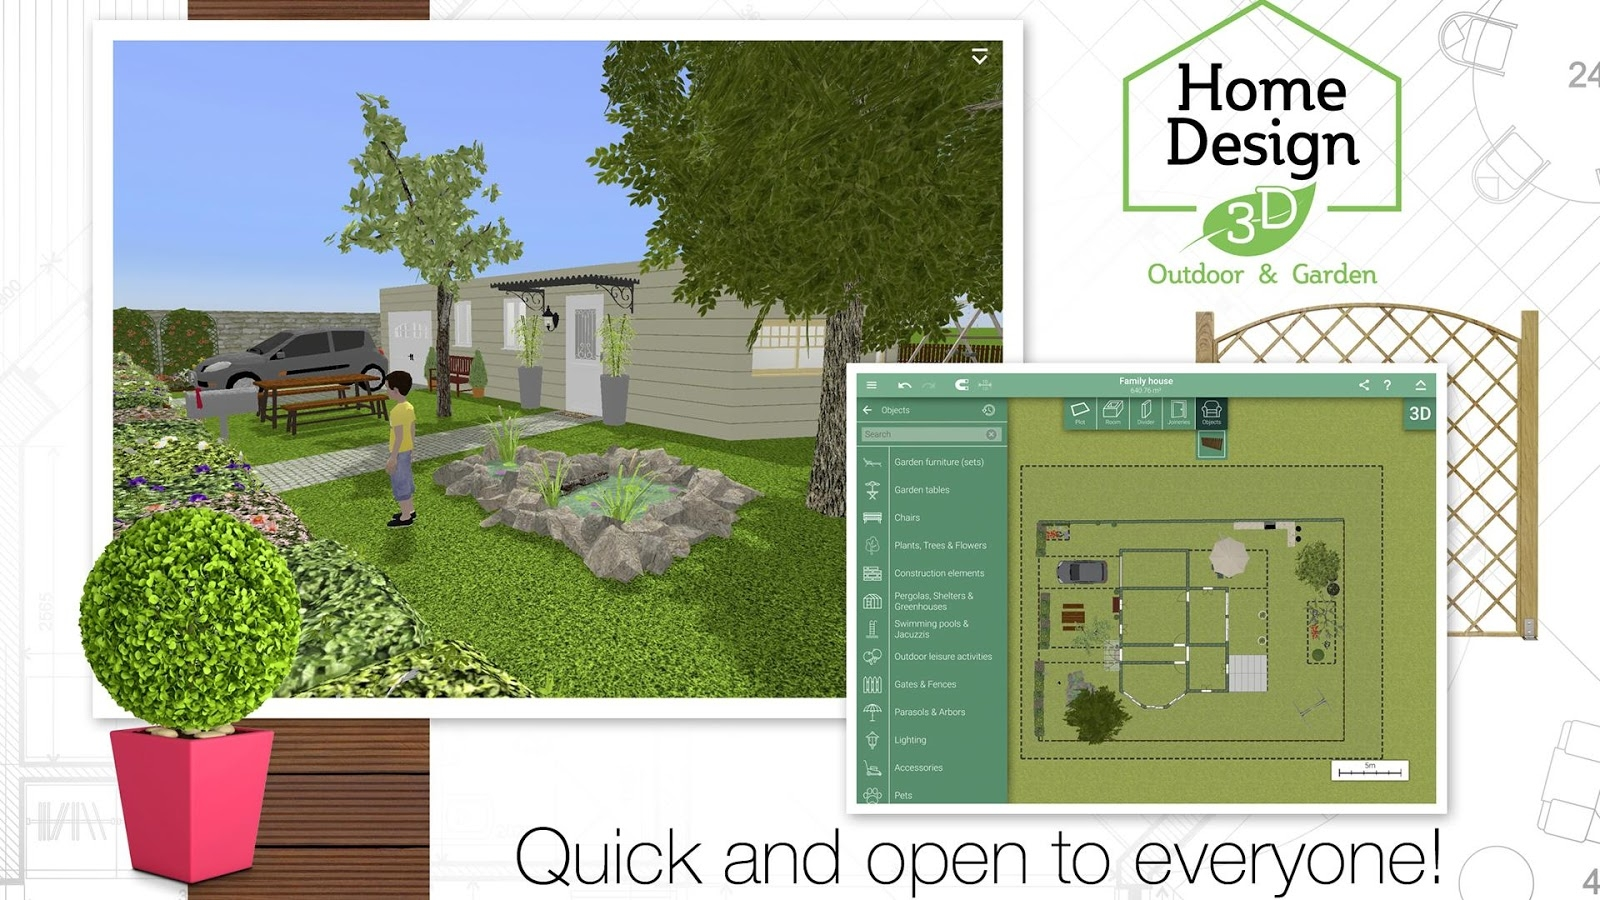 Home Design 3D Outdoor/garden 4.2.4 Apk + Obb (Data File) Download for Garden And House Design Software